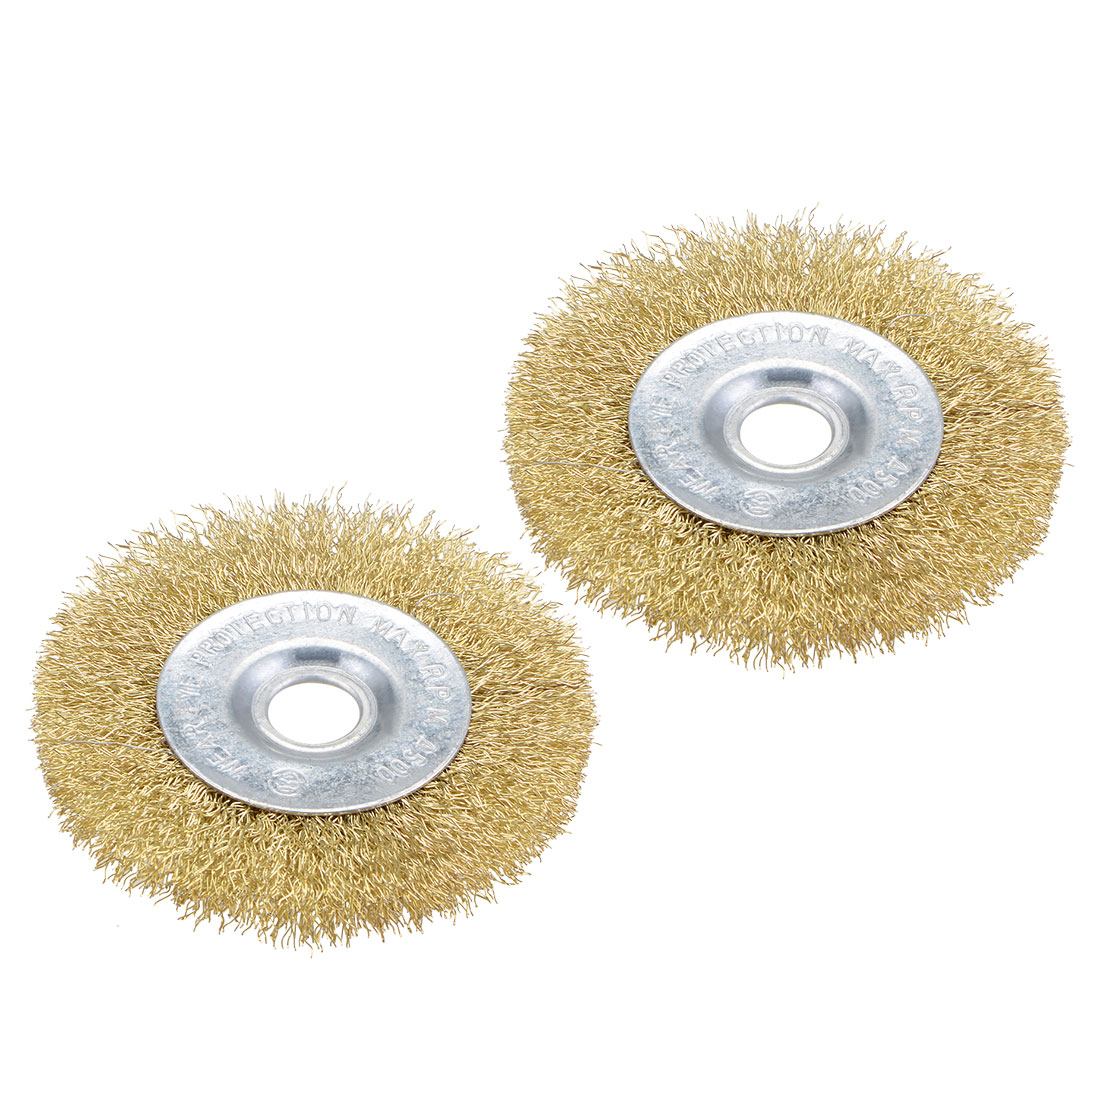 4-Inch Wire Wheel Brush Bench Brass Plated Crimped Steel w 5/8-Inch Arbor 2pcs